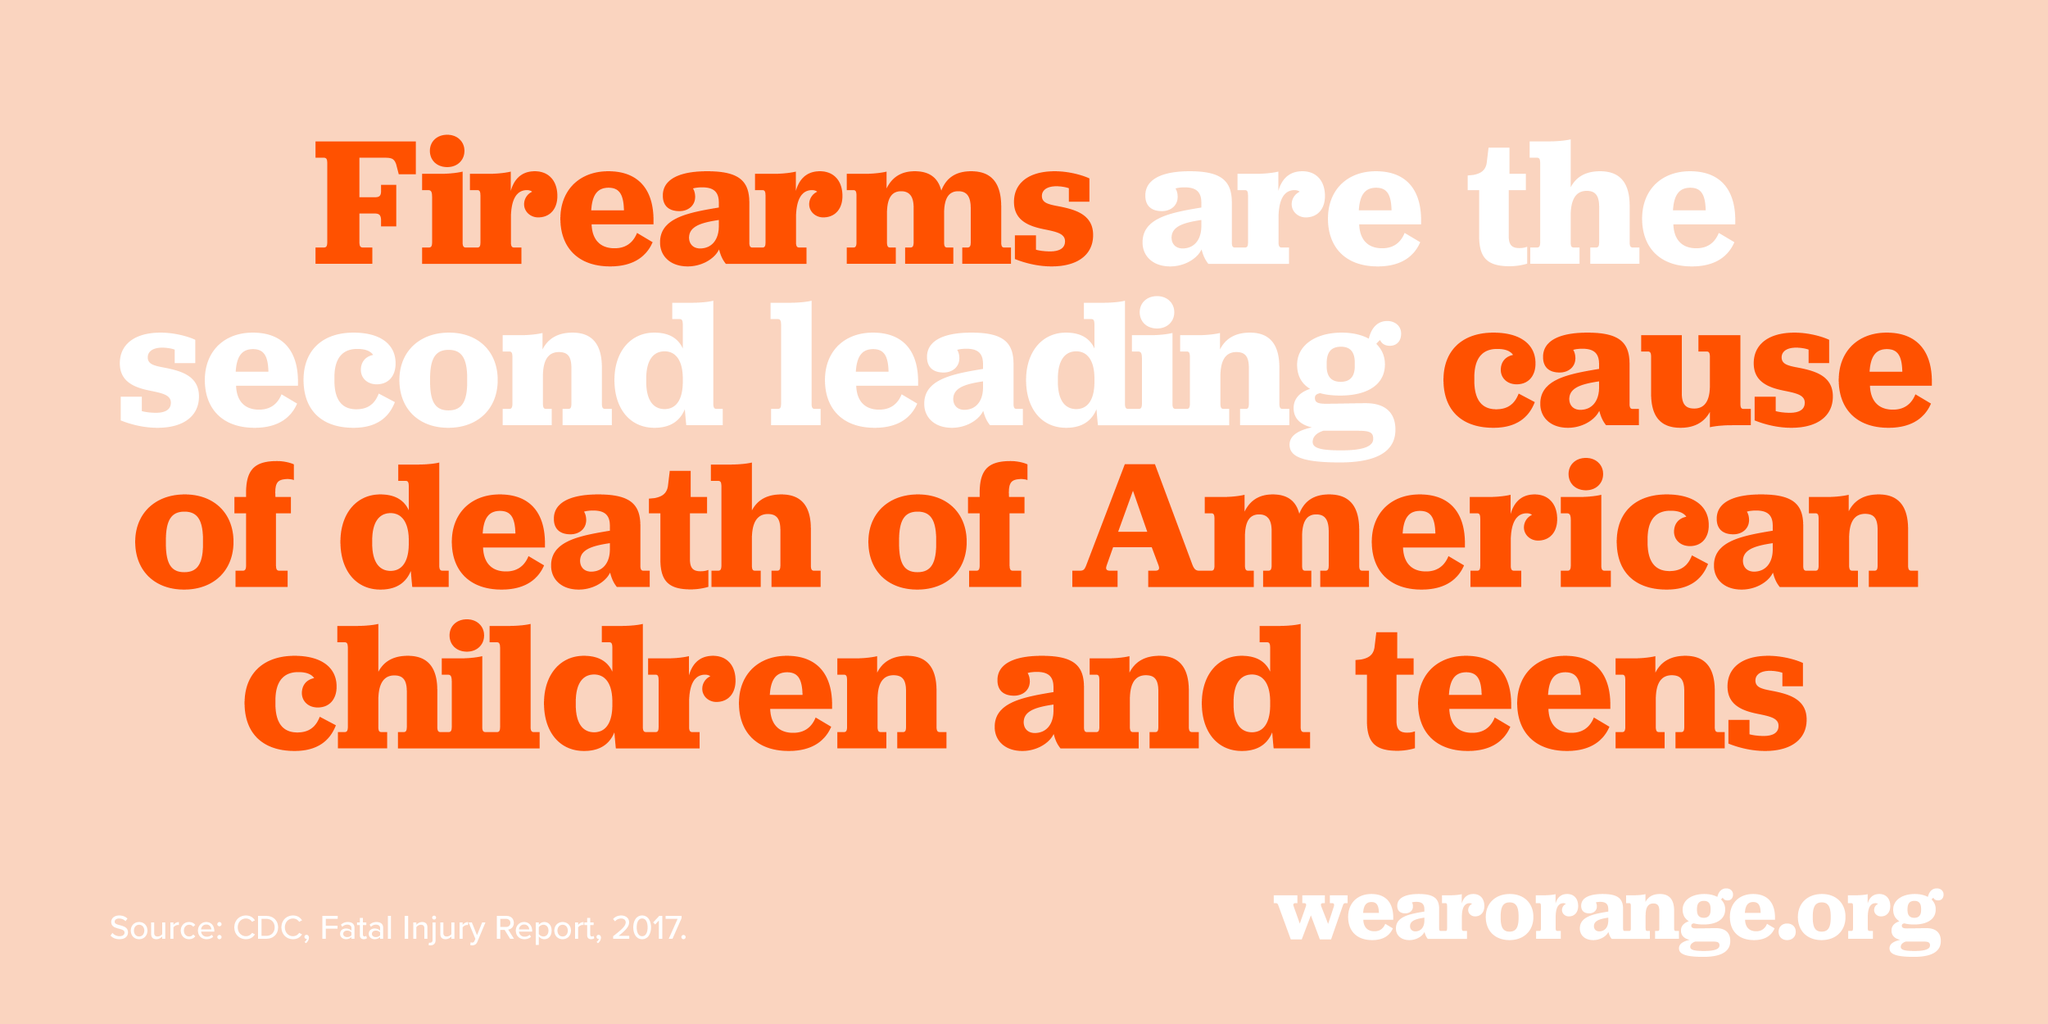 Firearms are the second leading cause of death for American children and teens